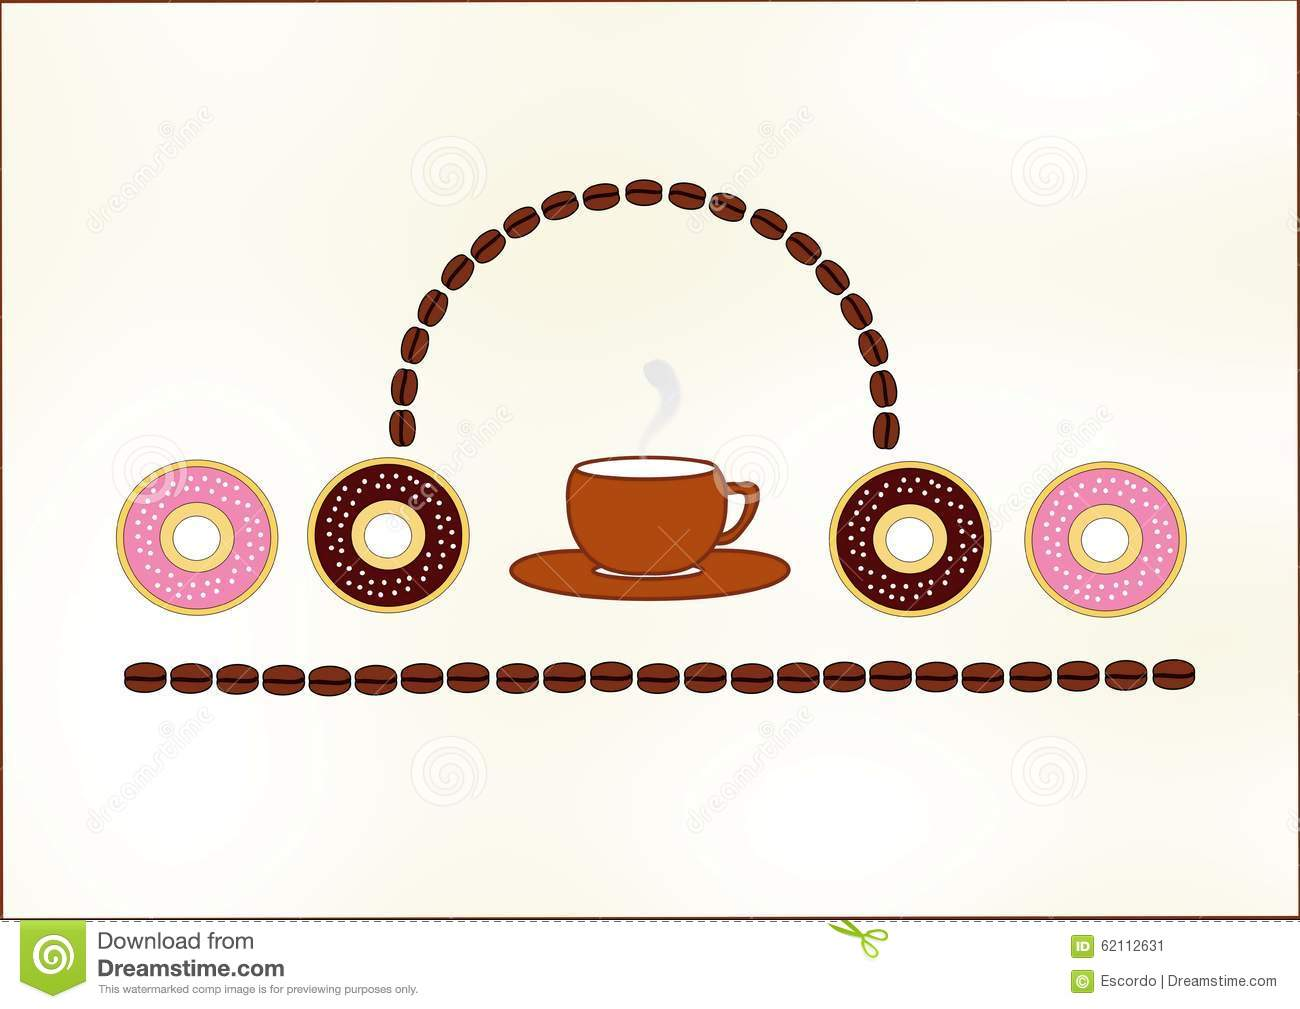 Coffee and donuts stock illustration. Illustration of cups ...